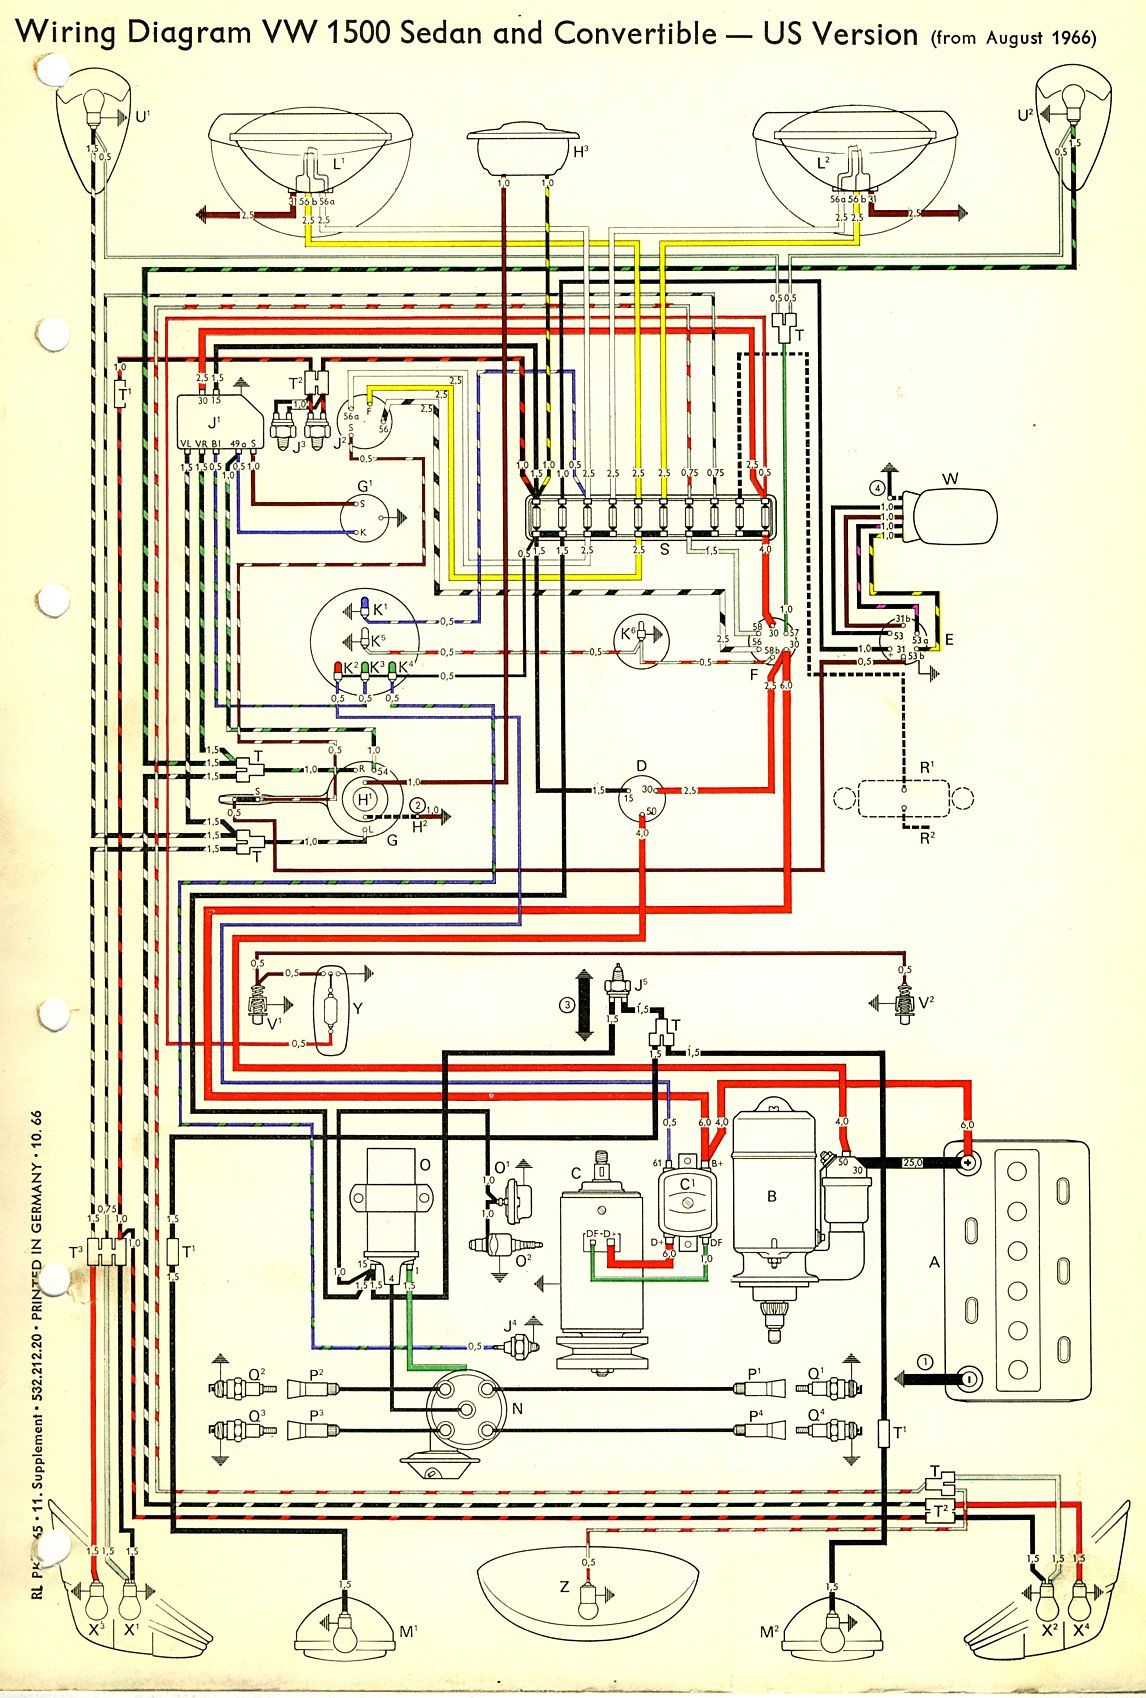 1adf990c0efb617c789fdd21338448b0 1967 beetle wiring diagram (usa) thegoldenbug com best 1967 vw Volkswagen Type 2 Wiring Harness at mifinder.co